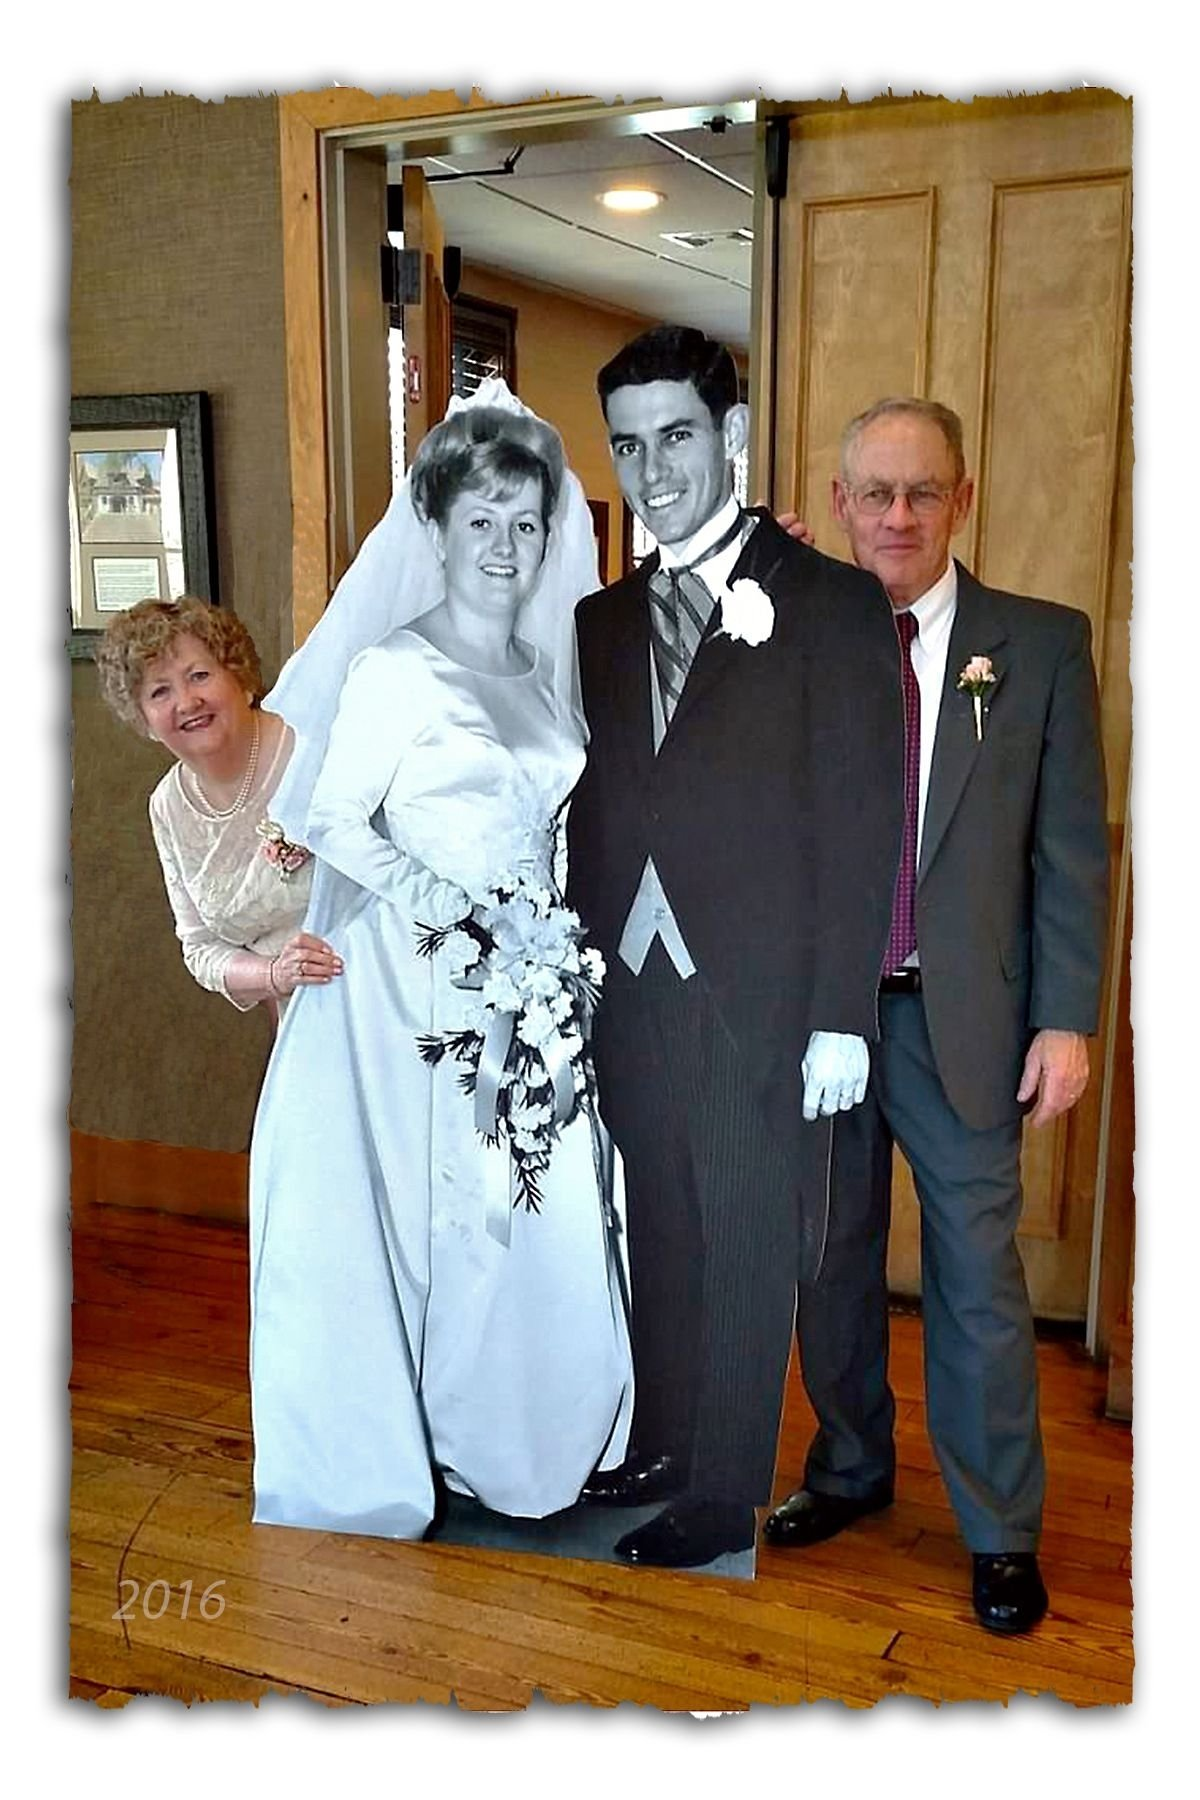 10 Great 50Th Wedding Anniversary Gift Ideas For Friends a 6 cutout wedding picture taken 50 years ago was a hit at our 50th 2021